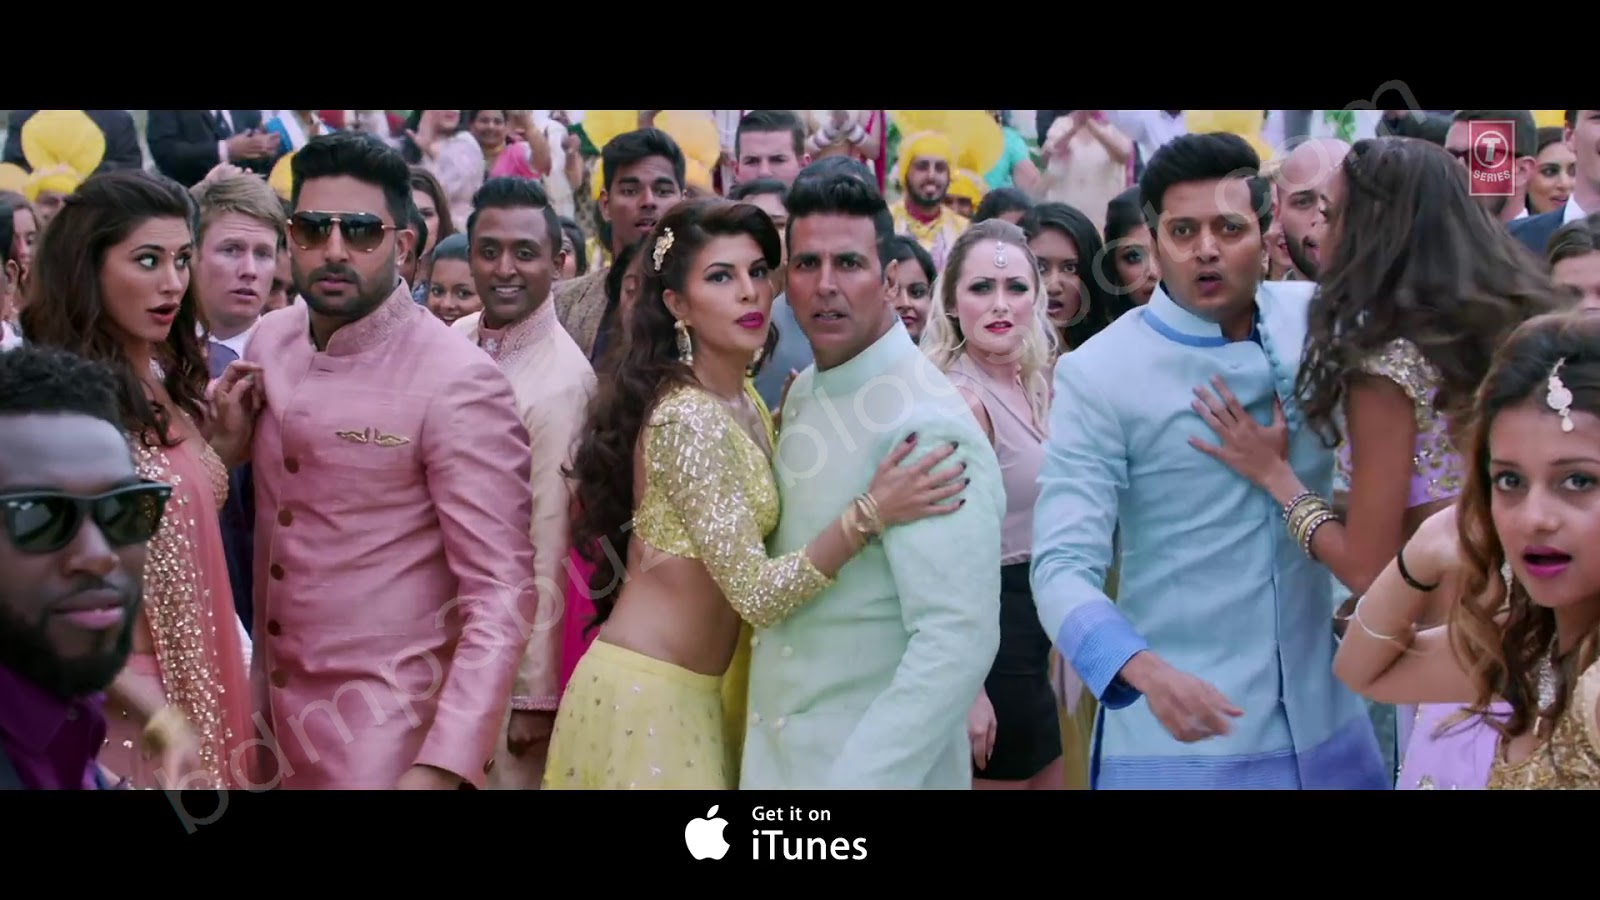 Kuch kuch hota hai mp4 hd video song download francemulti.